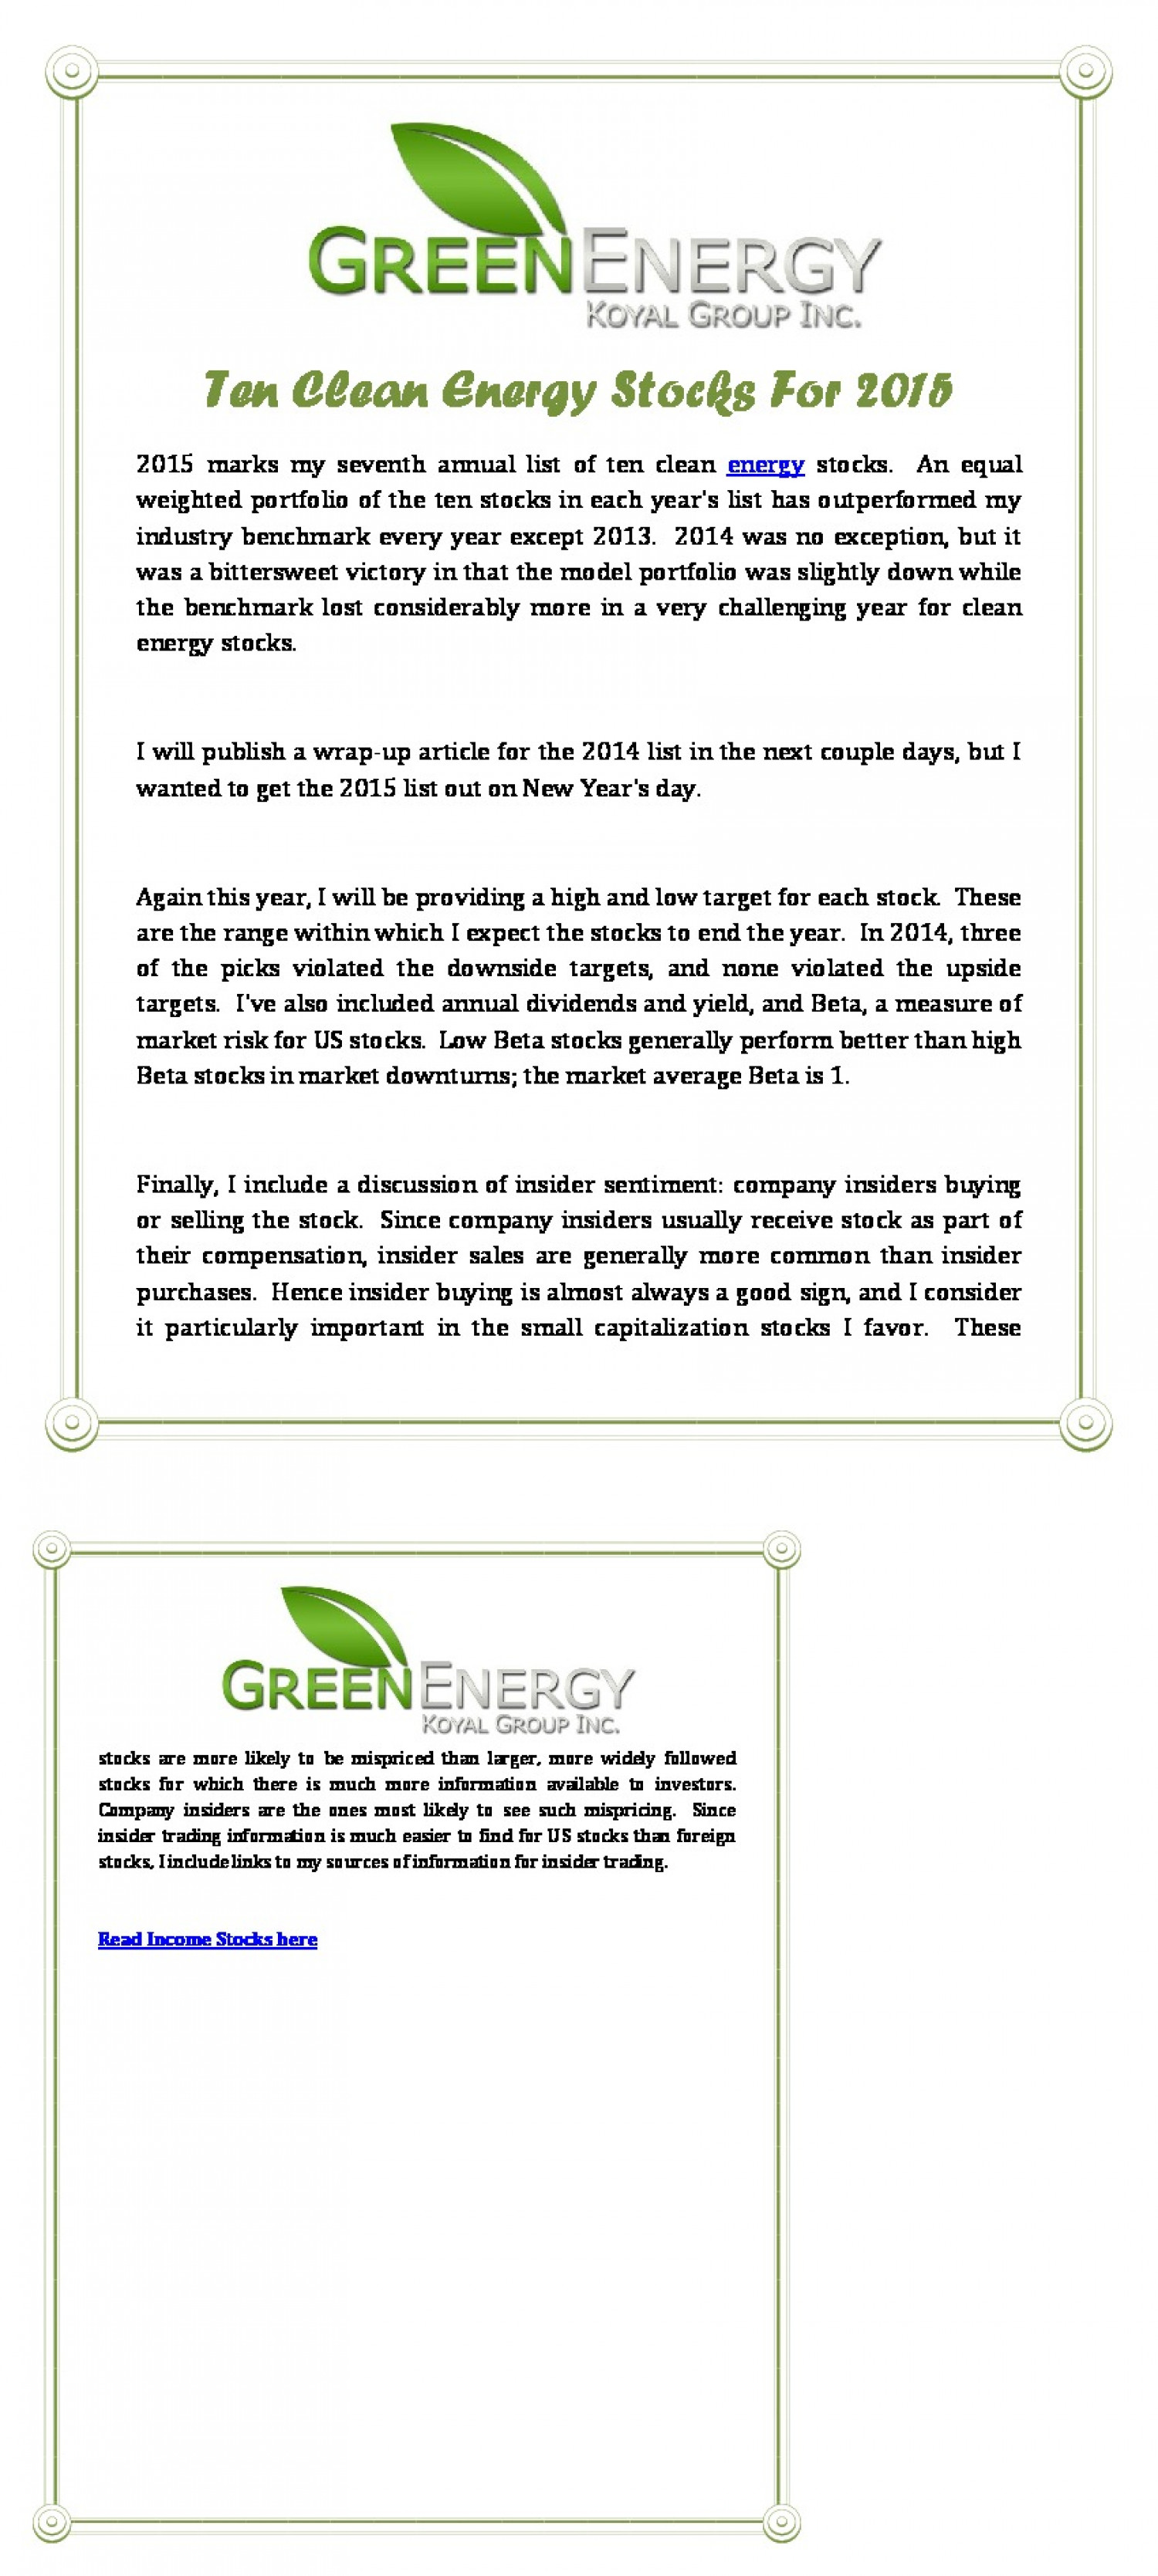 Green Energy Koyal Group Inc: Ten Clean Energy Stocks For 2015 Infographic